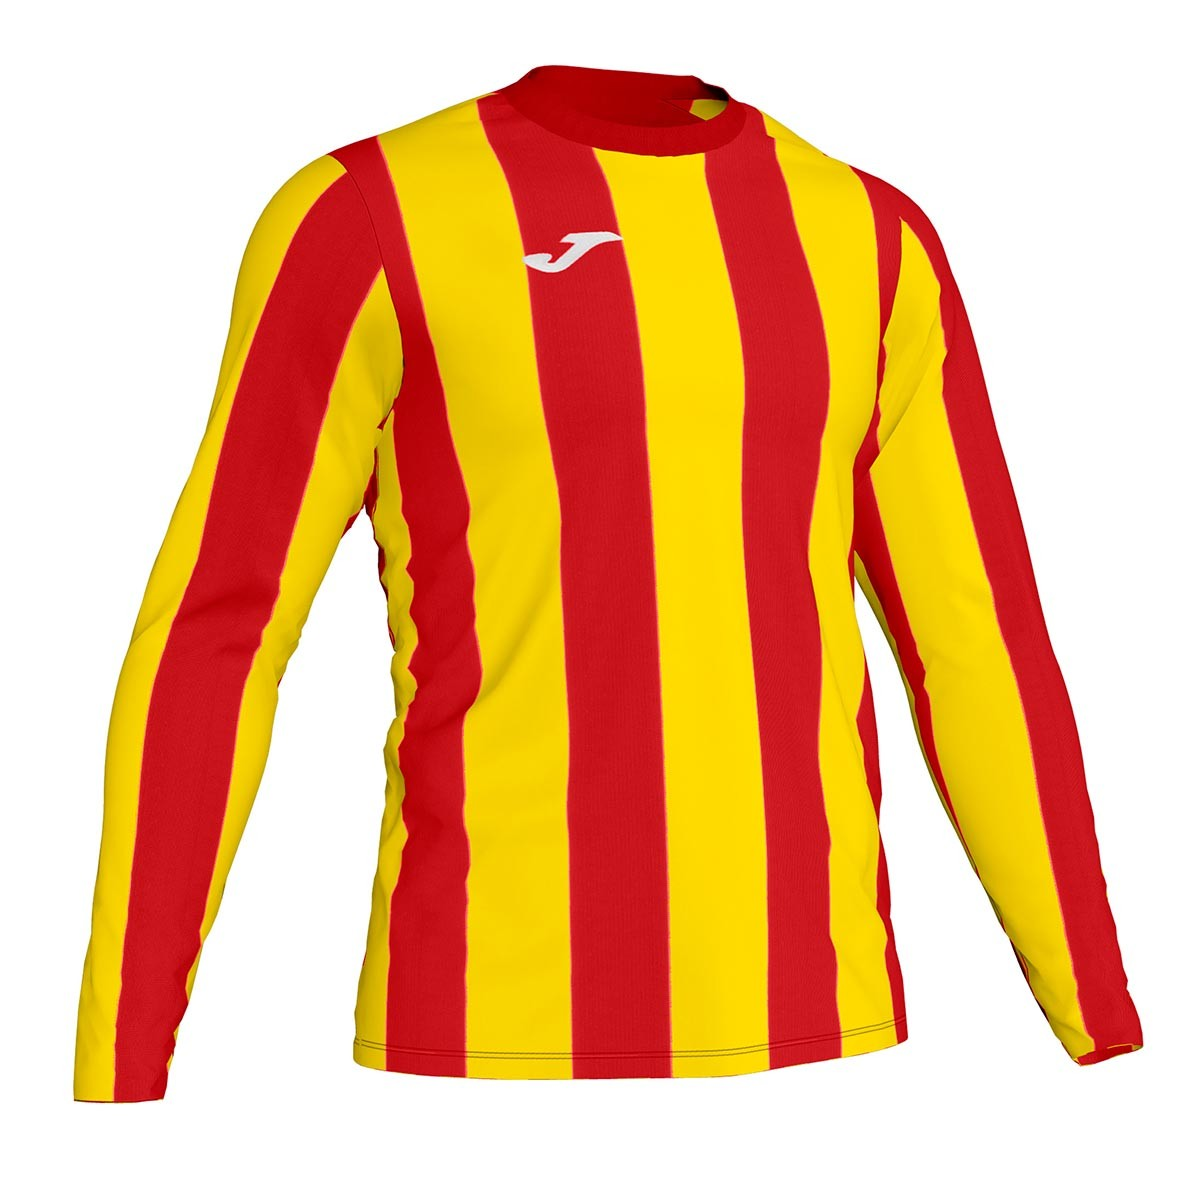 a88565737 Jersey Joma Inter m l Red-Yellow - Football store Fútbol Emotion